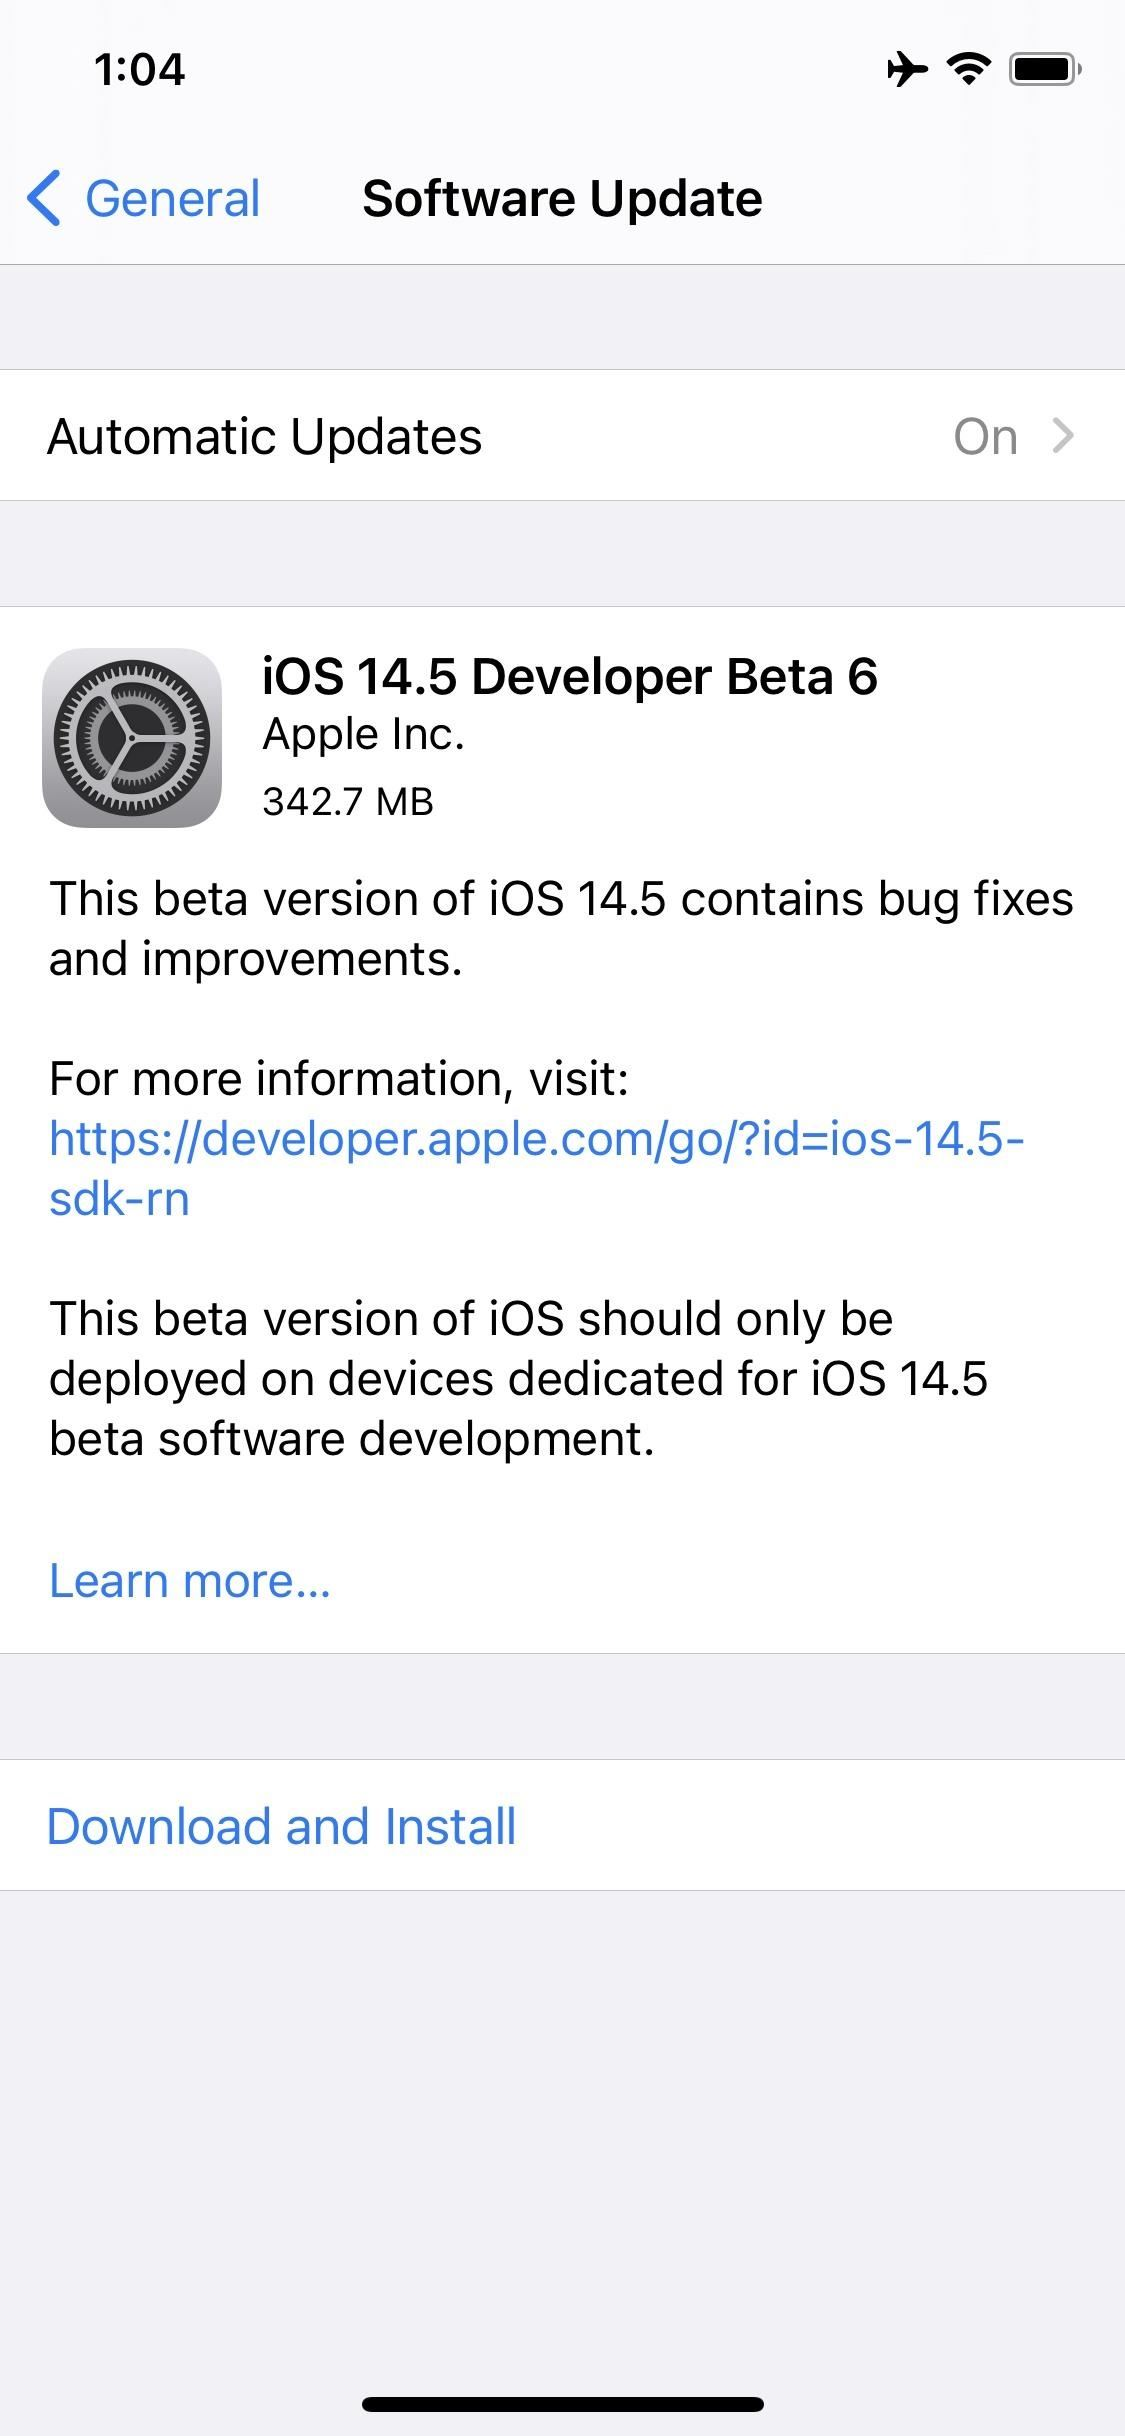 Apple Releases iOS 14.5 Beta 6 to Developers, Includes Battery Health Calibration for iPhone 11 Line